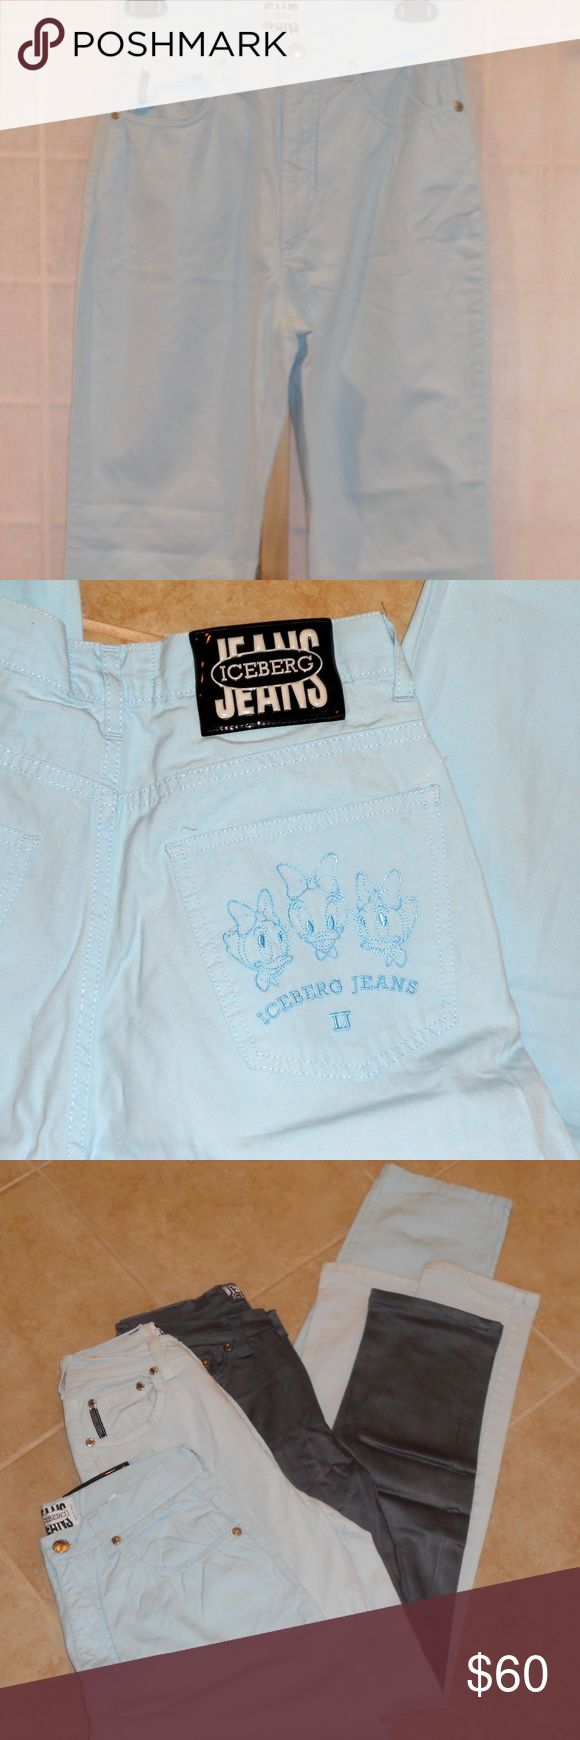 """Gilmar Iceberg Rare Disney Blue Jeans Sz 28 Gilmar Iceberg, Italian designer. Made in Italy. Size 28 light blue Disney jeans – very rare Disney Iceberg jeans!! Webbigail (Webby) Vanderquak from DuckTales, adopted sister of the famous Huey, Dewey Louie ducks, is embroidered on the back right pocket (see picture).  Skinny jeans, 5 pockets, belt loops, machine washable.  Rise: 12 ¼"""", inseam: 30 ¾"""", length: 42"""". 100% cotton. Perfect condition. Gilmar Jeans Skinny"""